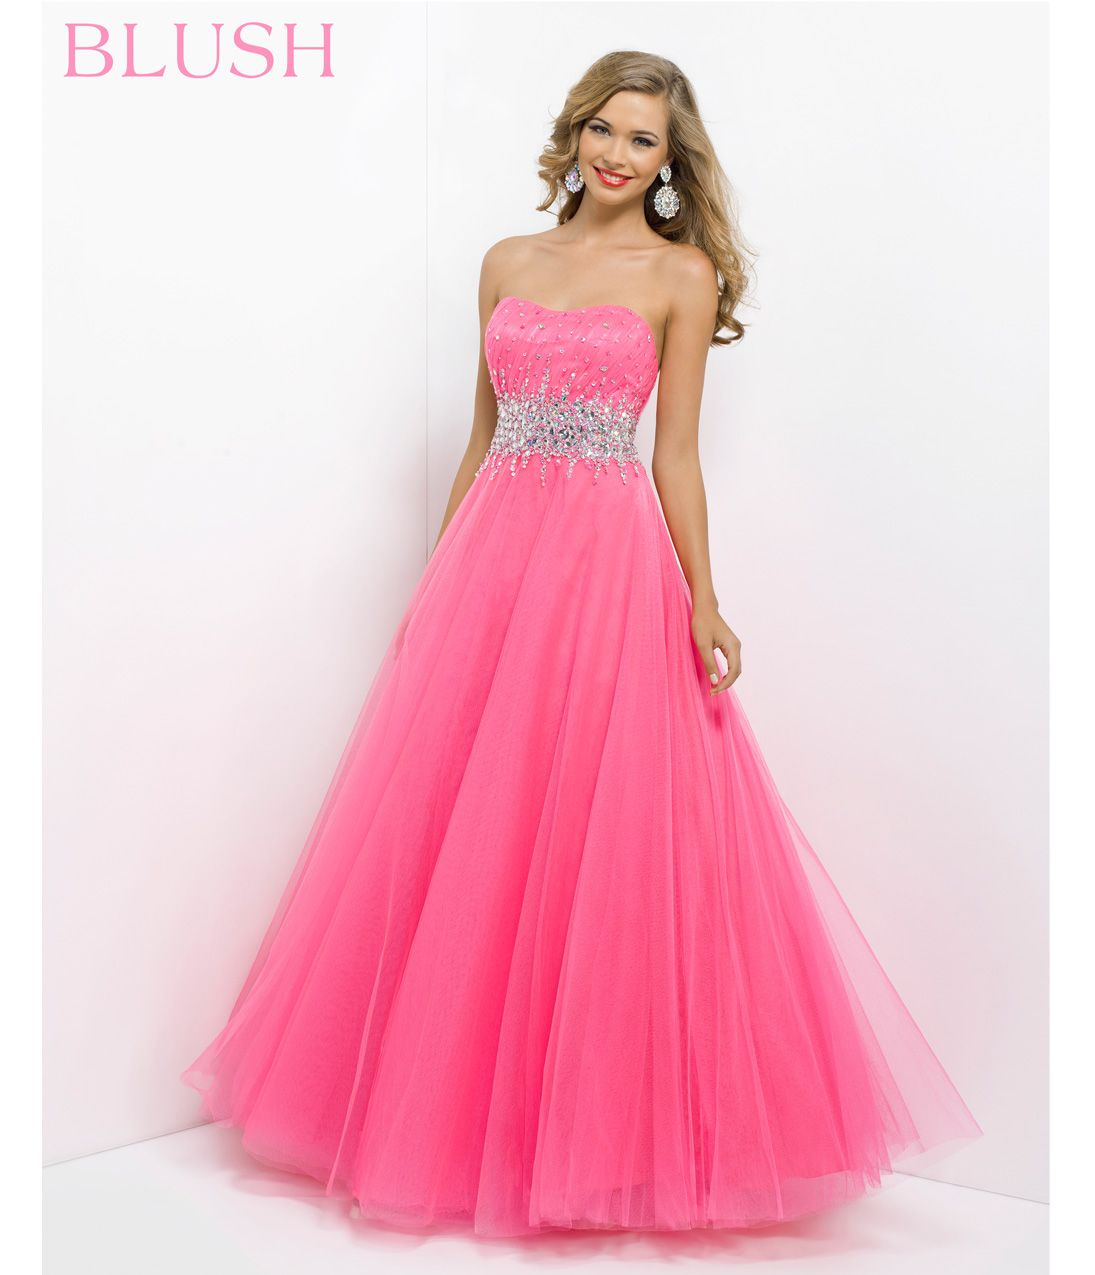 Pink by Blush 2014 Prom Dresses - Azalea Strapless Empire Waist Prom Gown - Unique Vintage - Prom dresses, retro dresses, retro swimsuits.